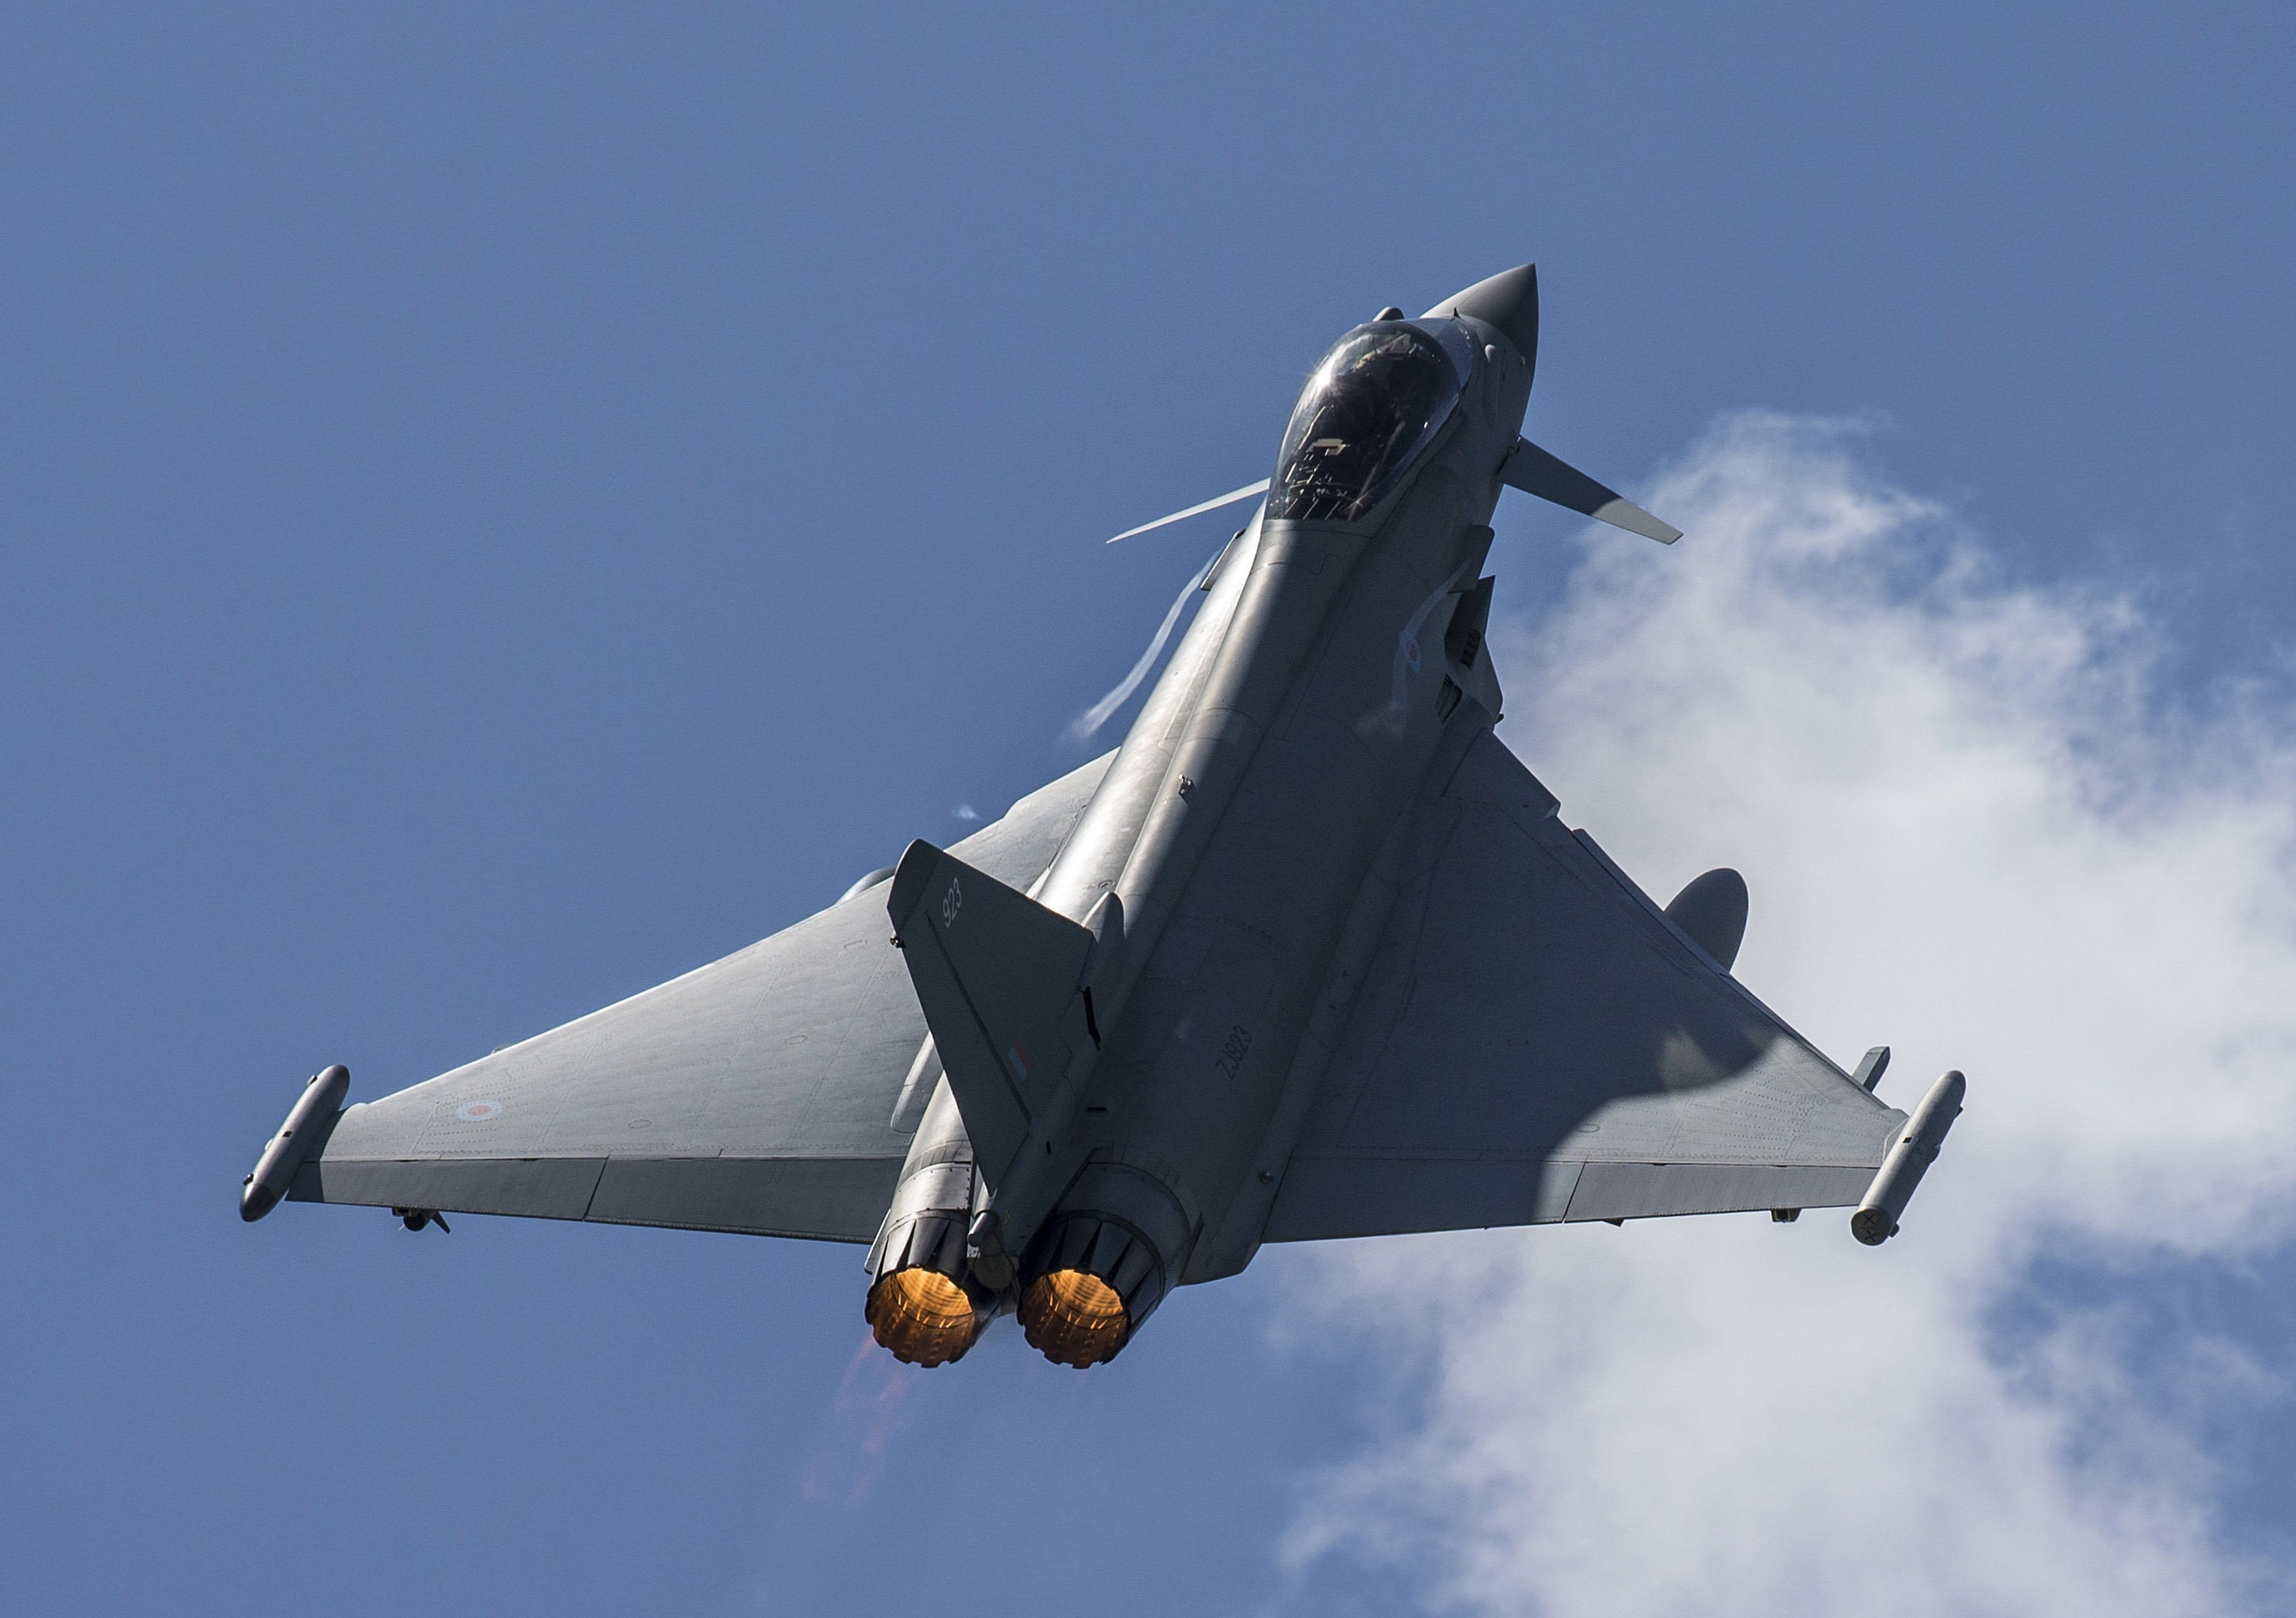 British Typhoon jets scrambled to investigate Russian aircraft near